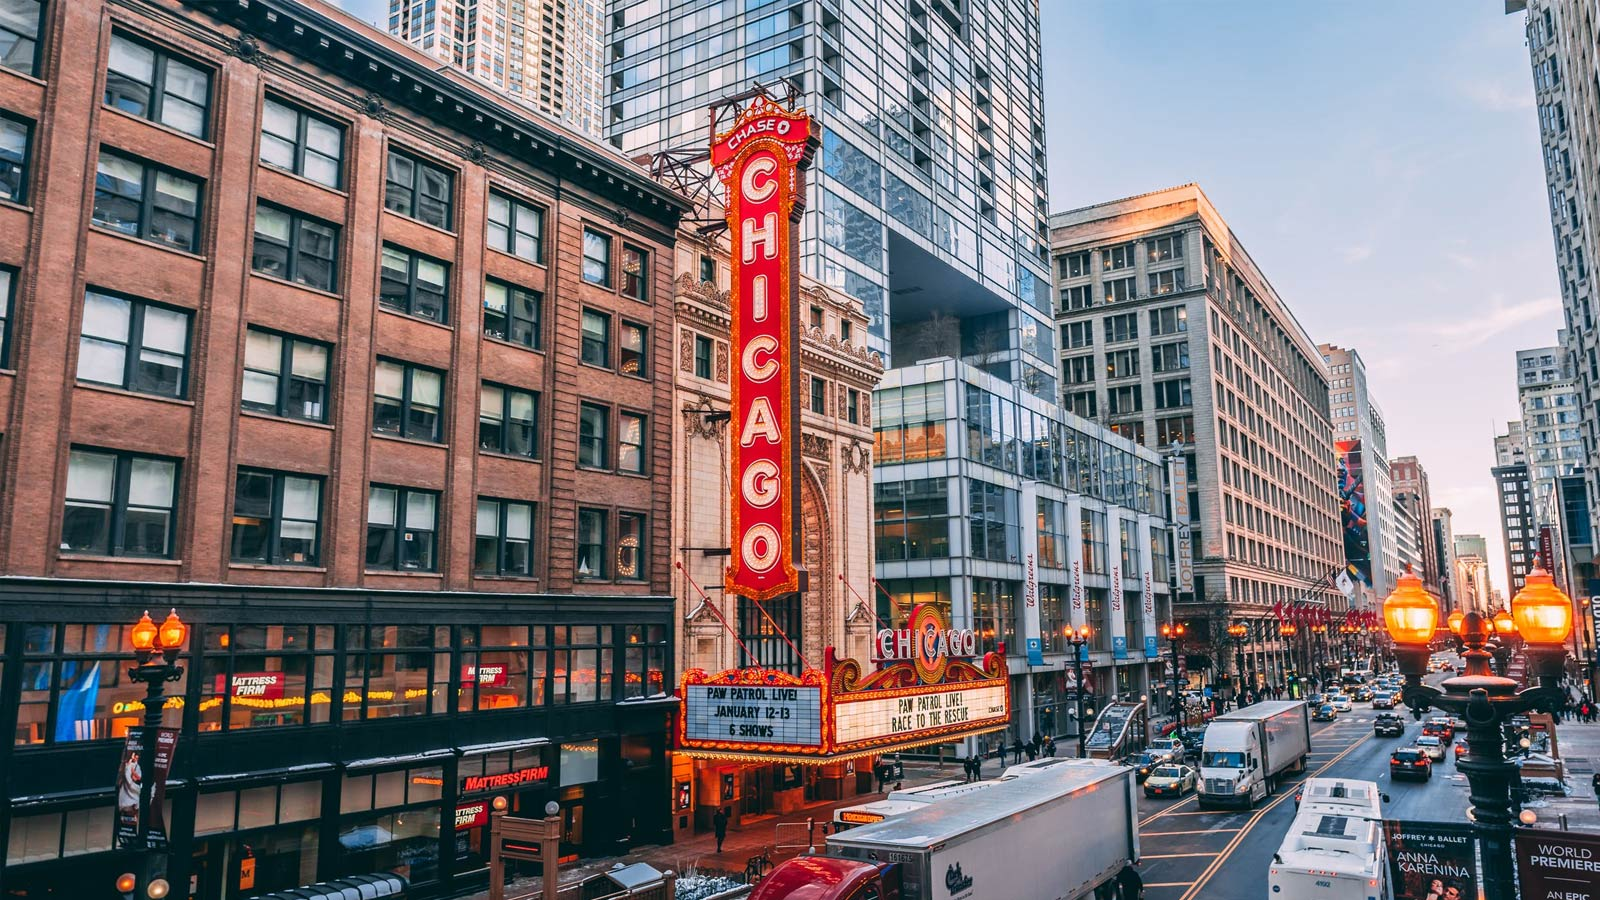 A Business Traveler's Guide To Chicago